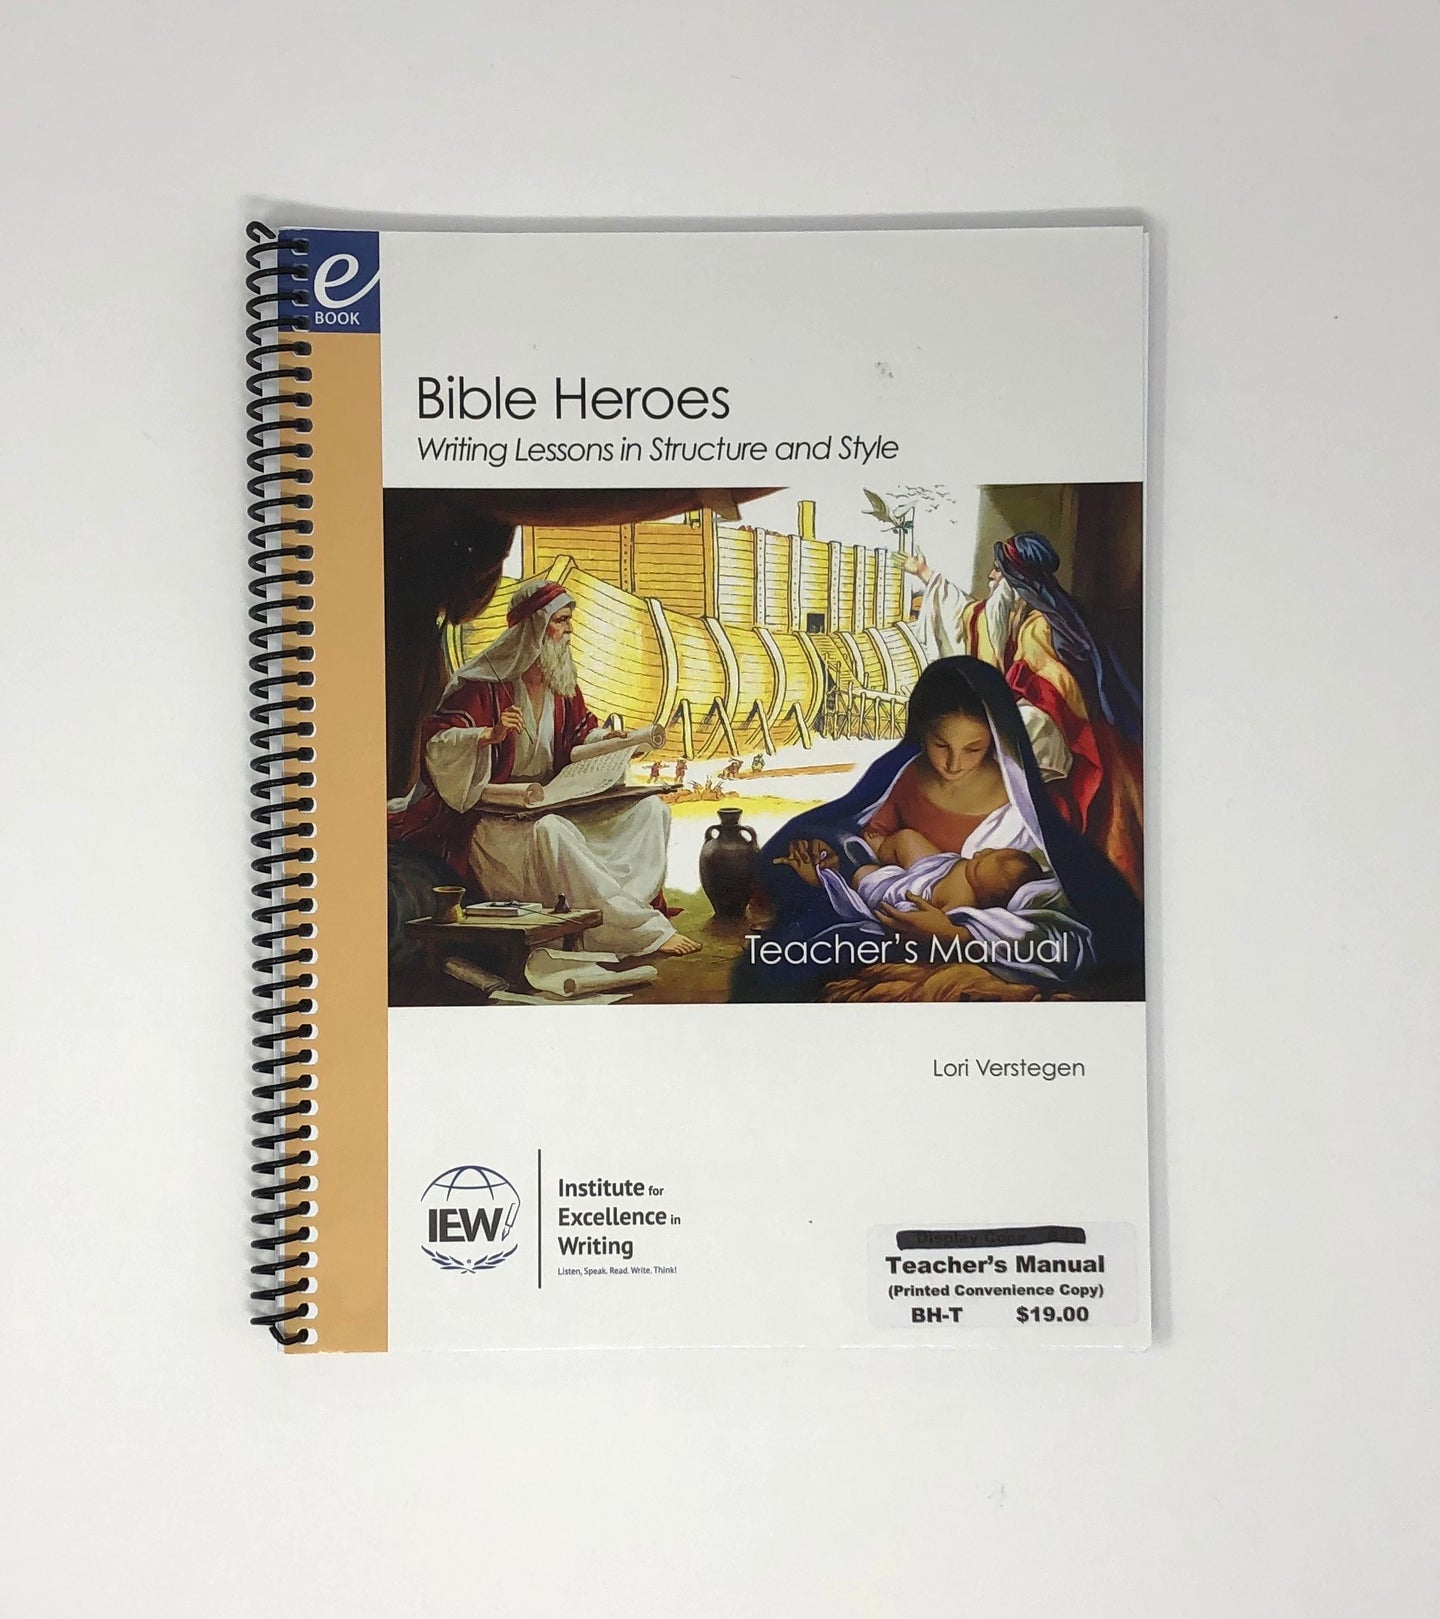 Bible Heroes: Writing Lessons Printed Copy (Teacher's Manual)-IEW (New) - Little Green Schoolhouse Books